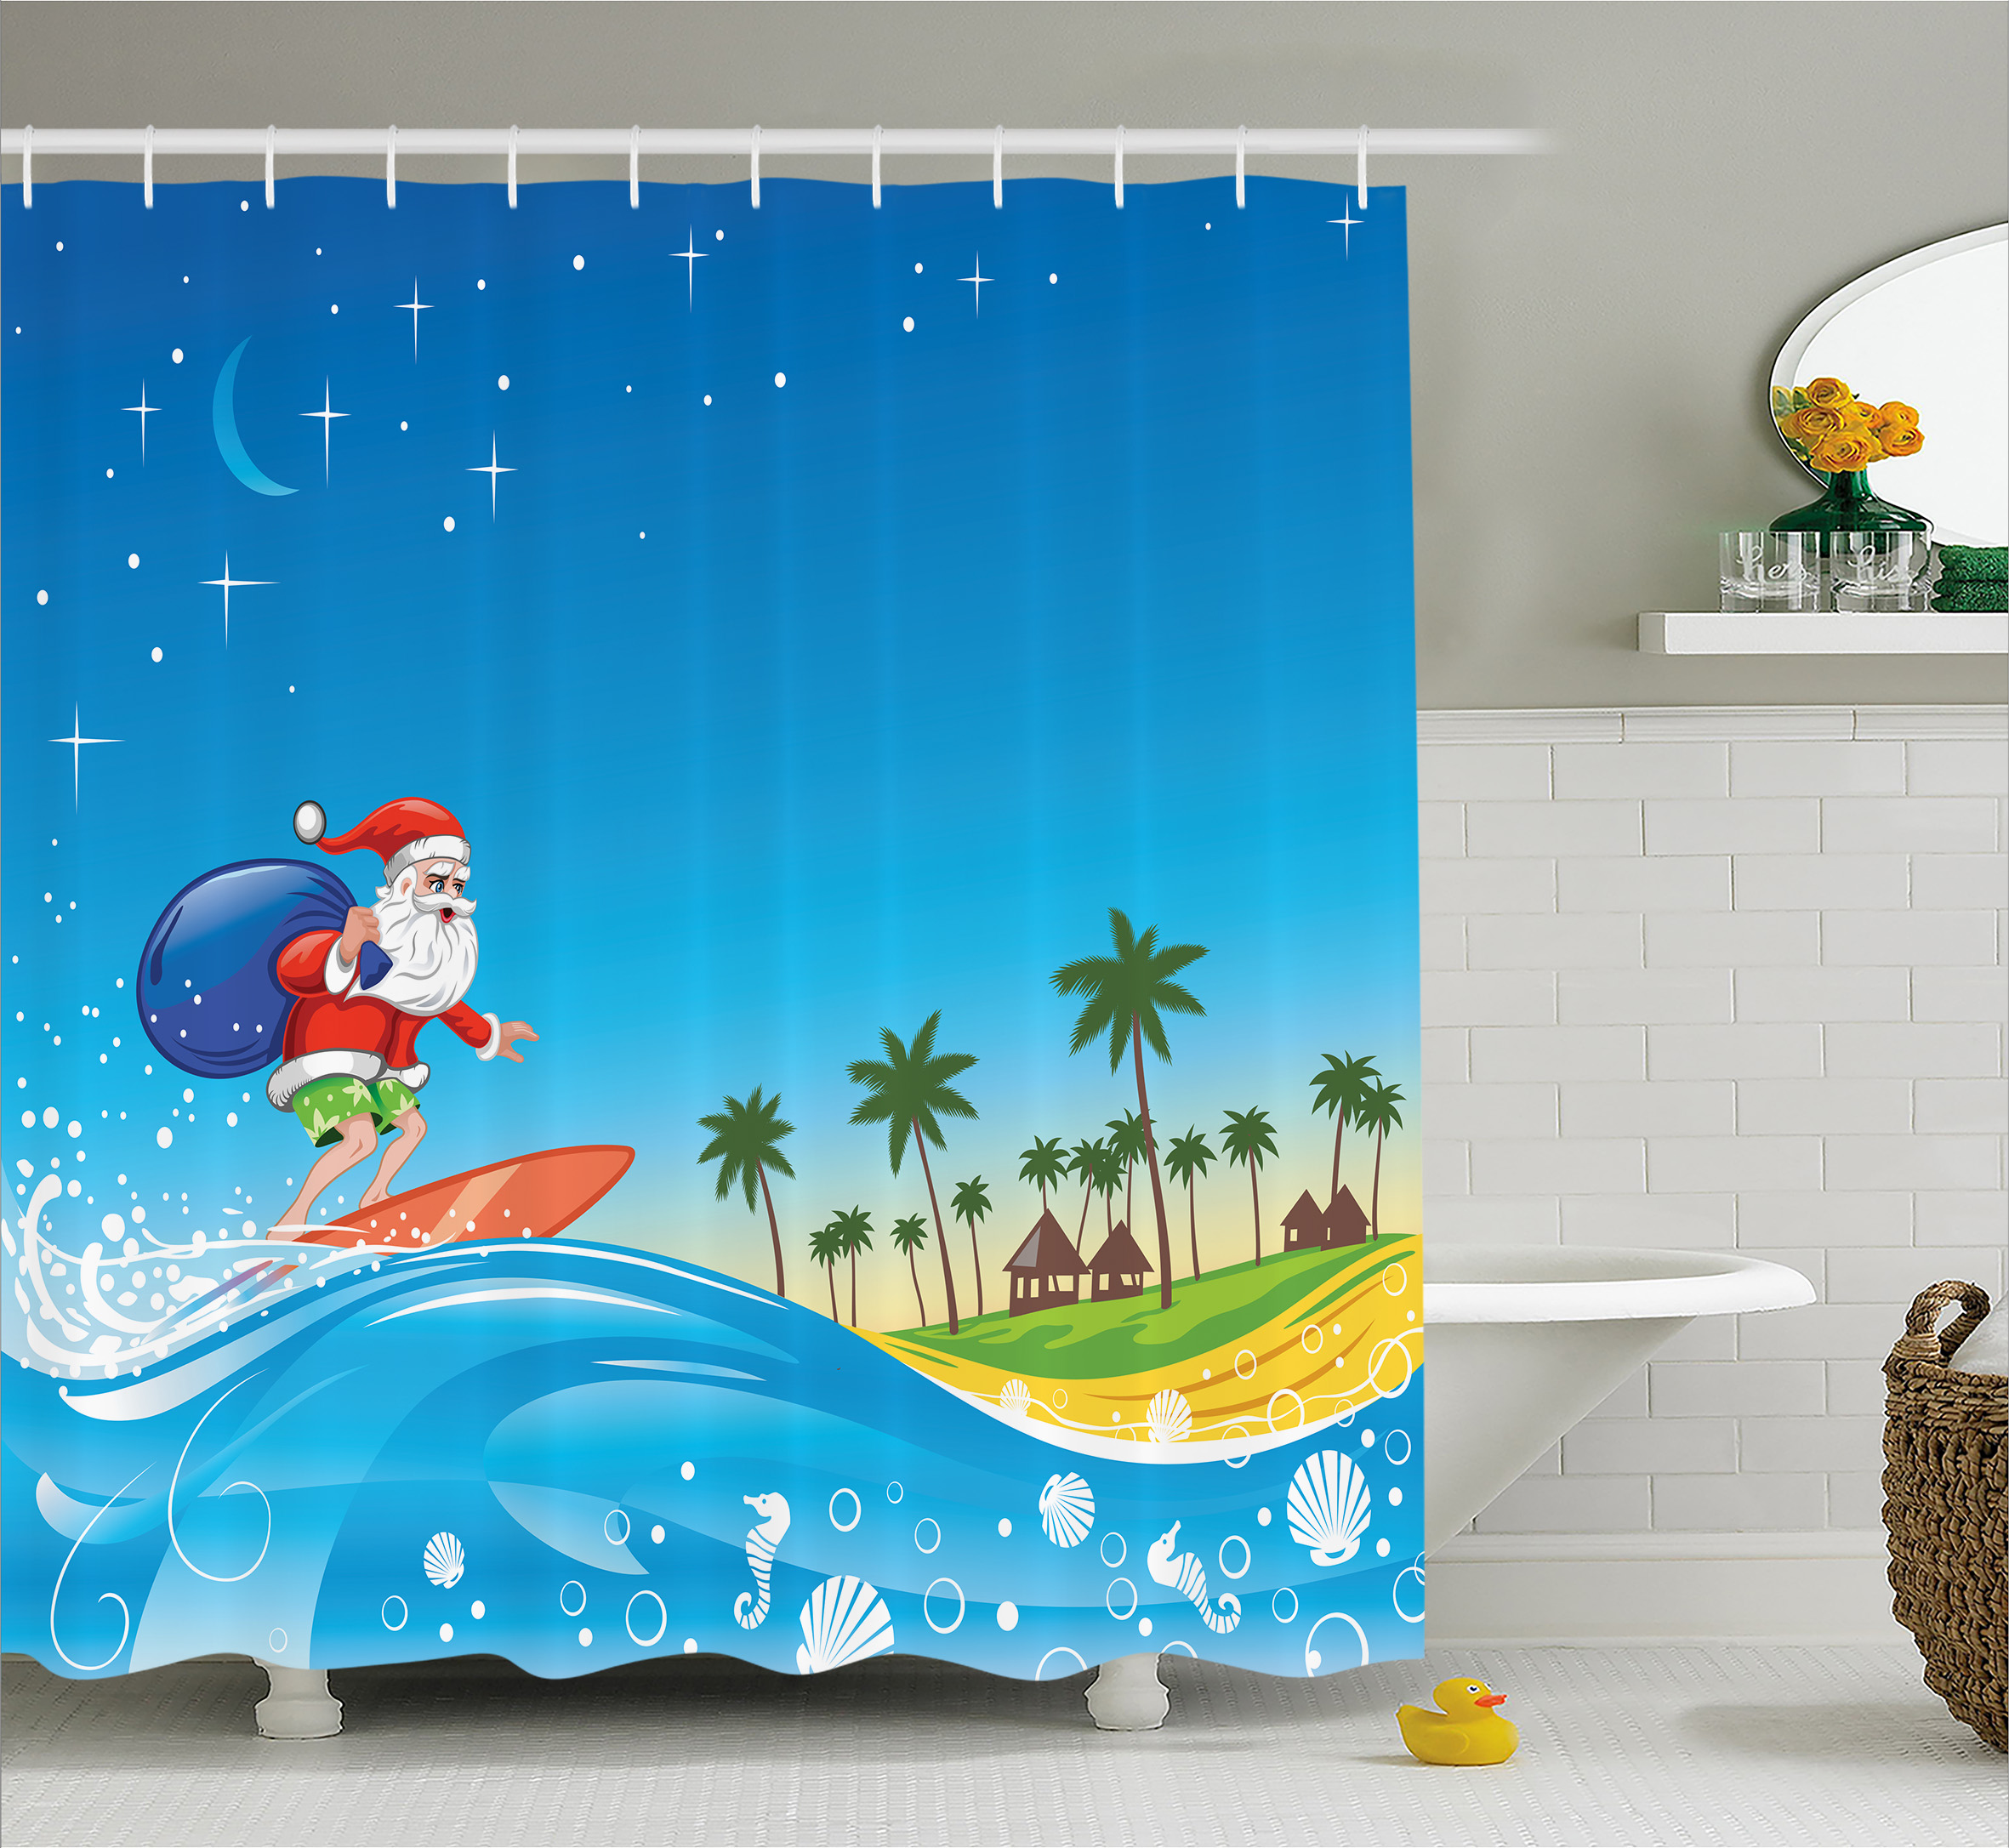 Christmas Shower Curtain Set, Surfing Santa on a Wave with Sack at the Beach Tropical Night Theme Fantasy Cartoon , Bathroom Decor, Multi, by Ambesonne